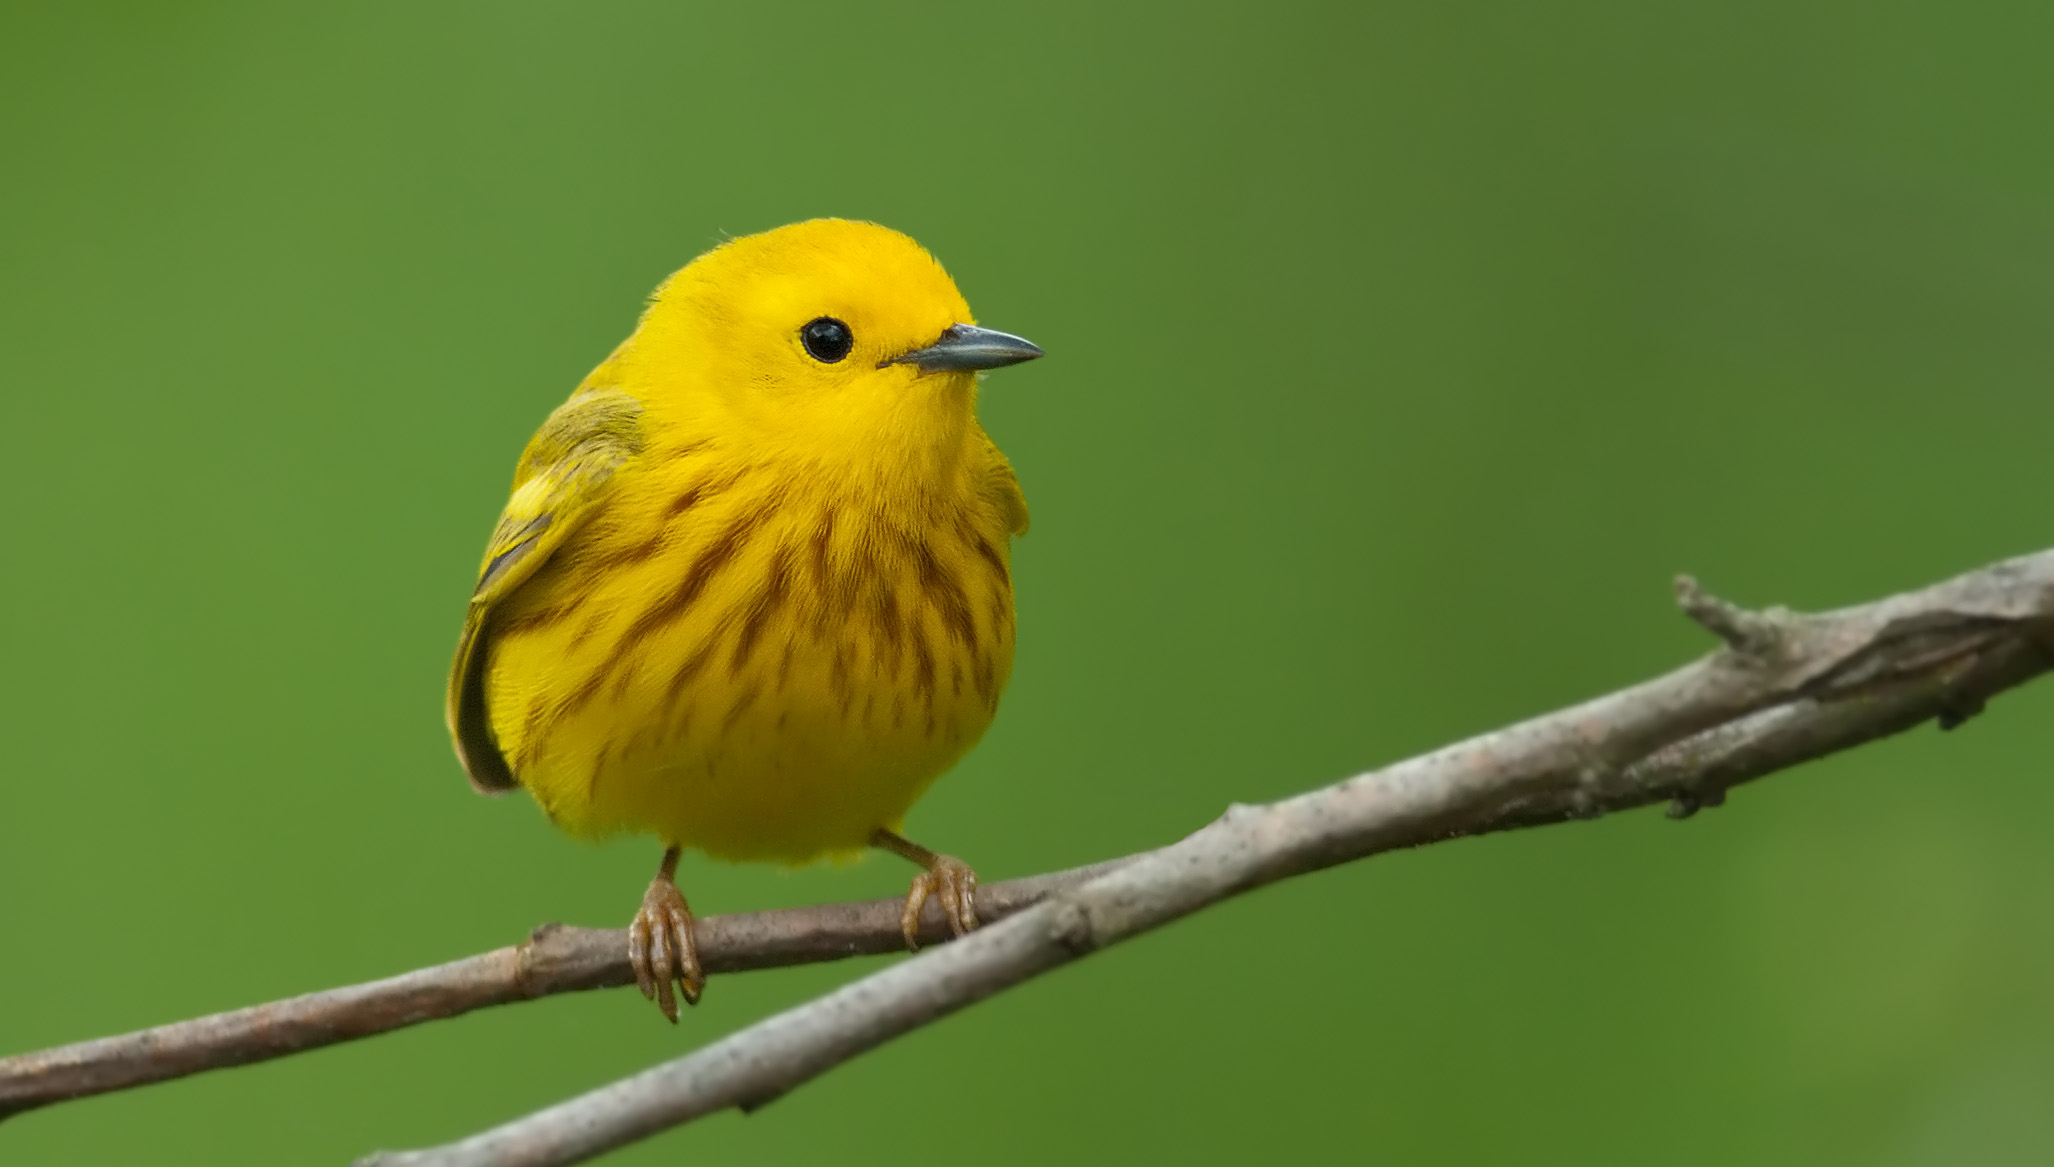 """- Yellow Warbler (Setophaga petechia)Yellow Warblers live in woods bordering bodies of water. Their diet includes insects such as leafhoppers, caterpillars, and flies, and berries. They weigh 0.3-0.4 oz. and have a wingspan of 6.3-7.9 in. Yellow Warblers sing a well-known song that says """"sweet-sweet-sweet. I'm so sweet."""" They are protected on the US Migratory Bird list.Photo Credits: Kelly Colgan Azar"""